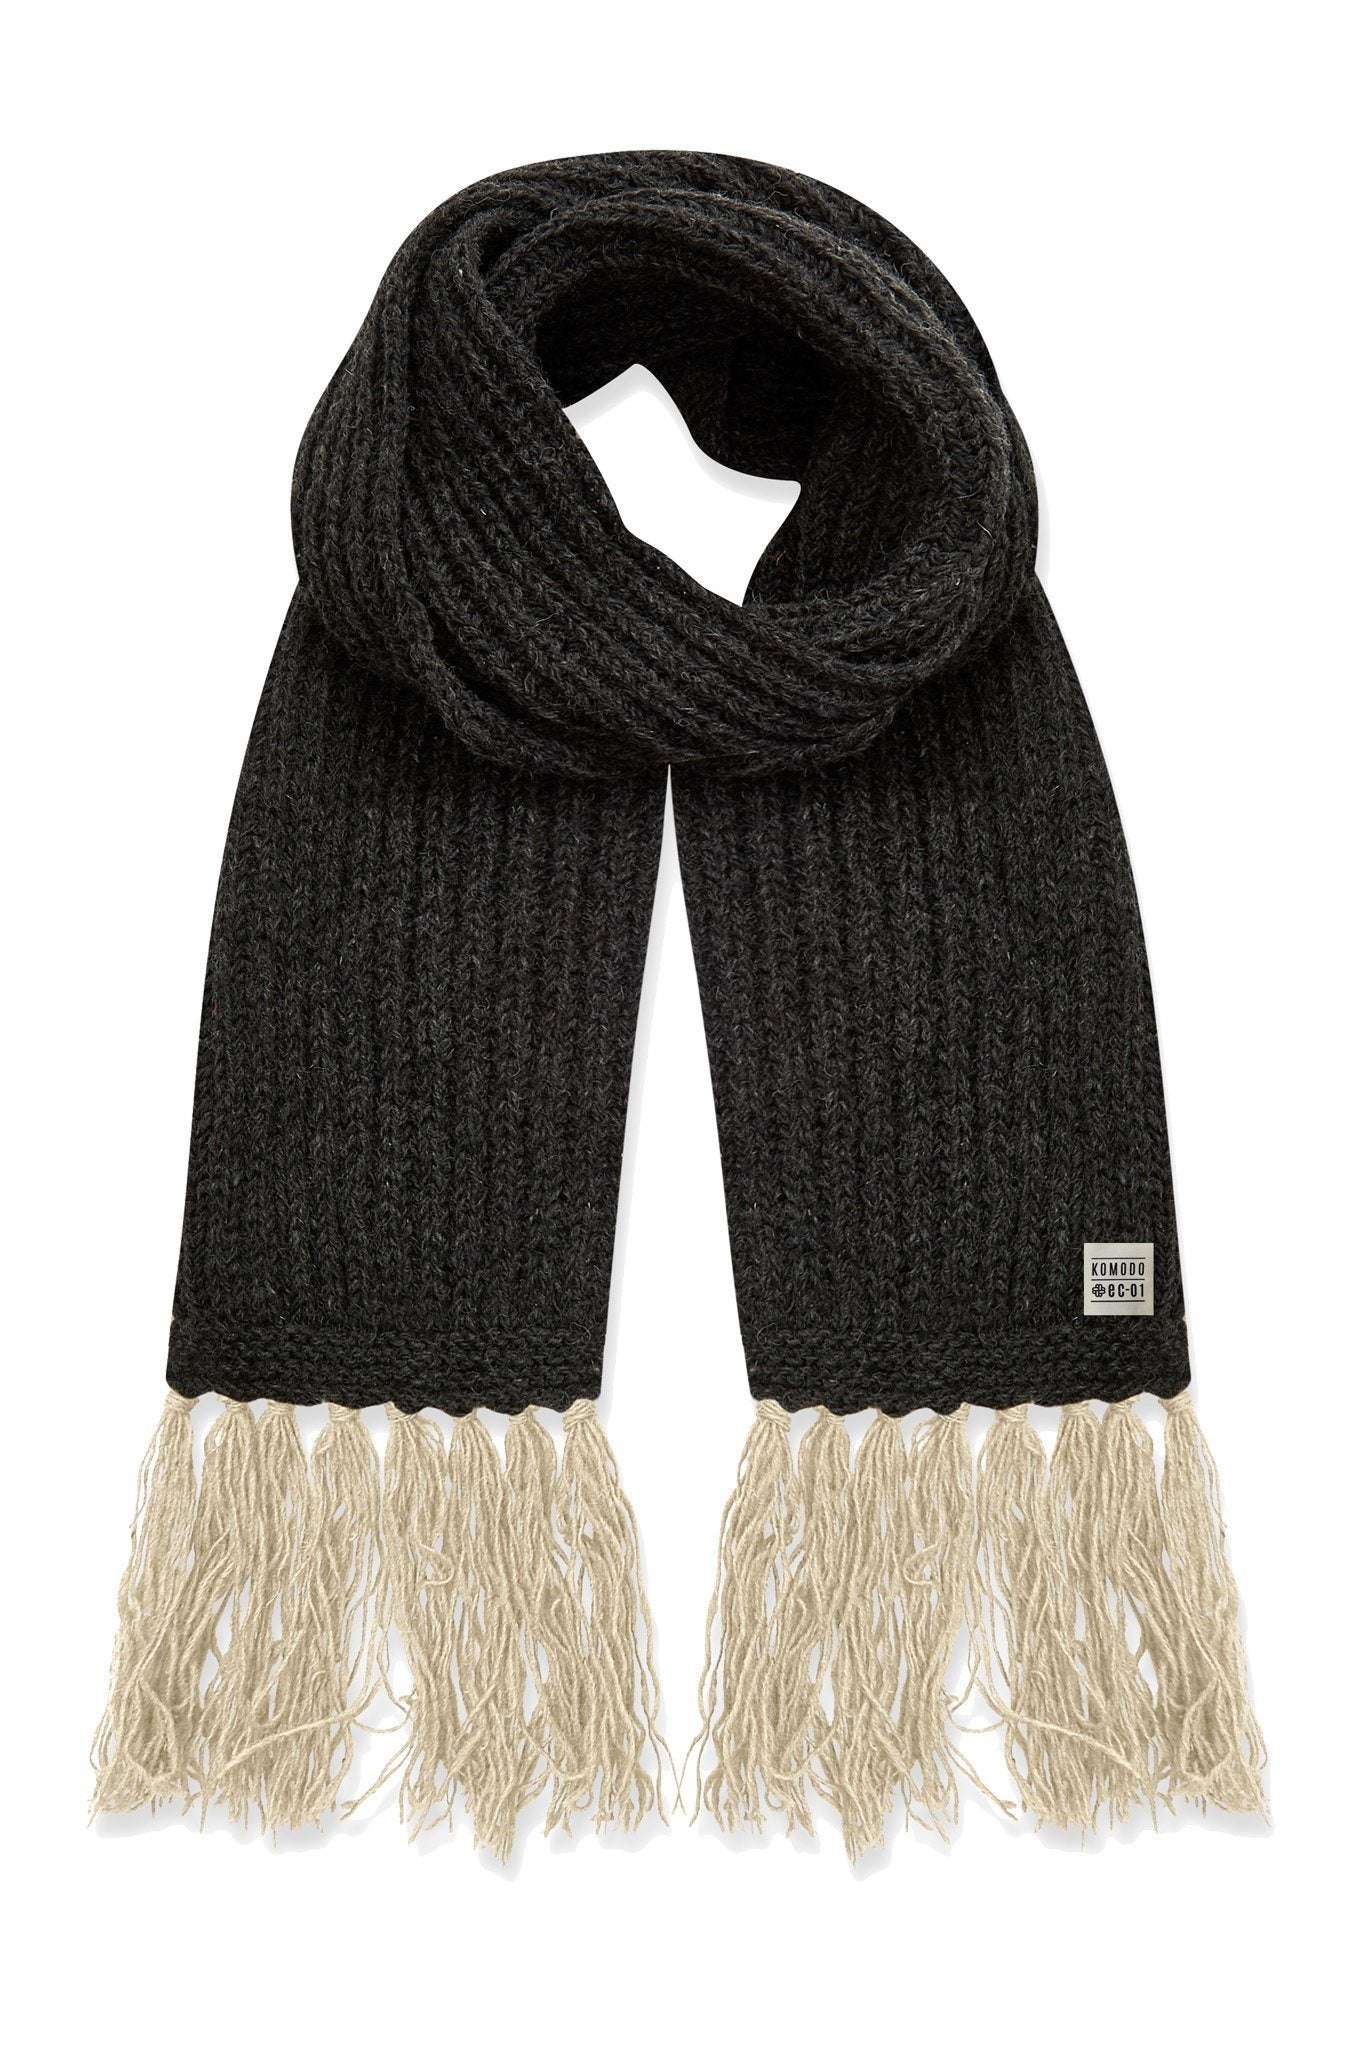 Accessories - LIZZIE Recycled Wool Scarf Coal